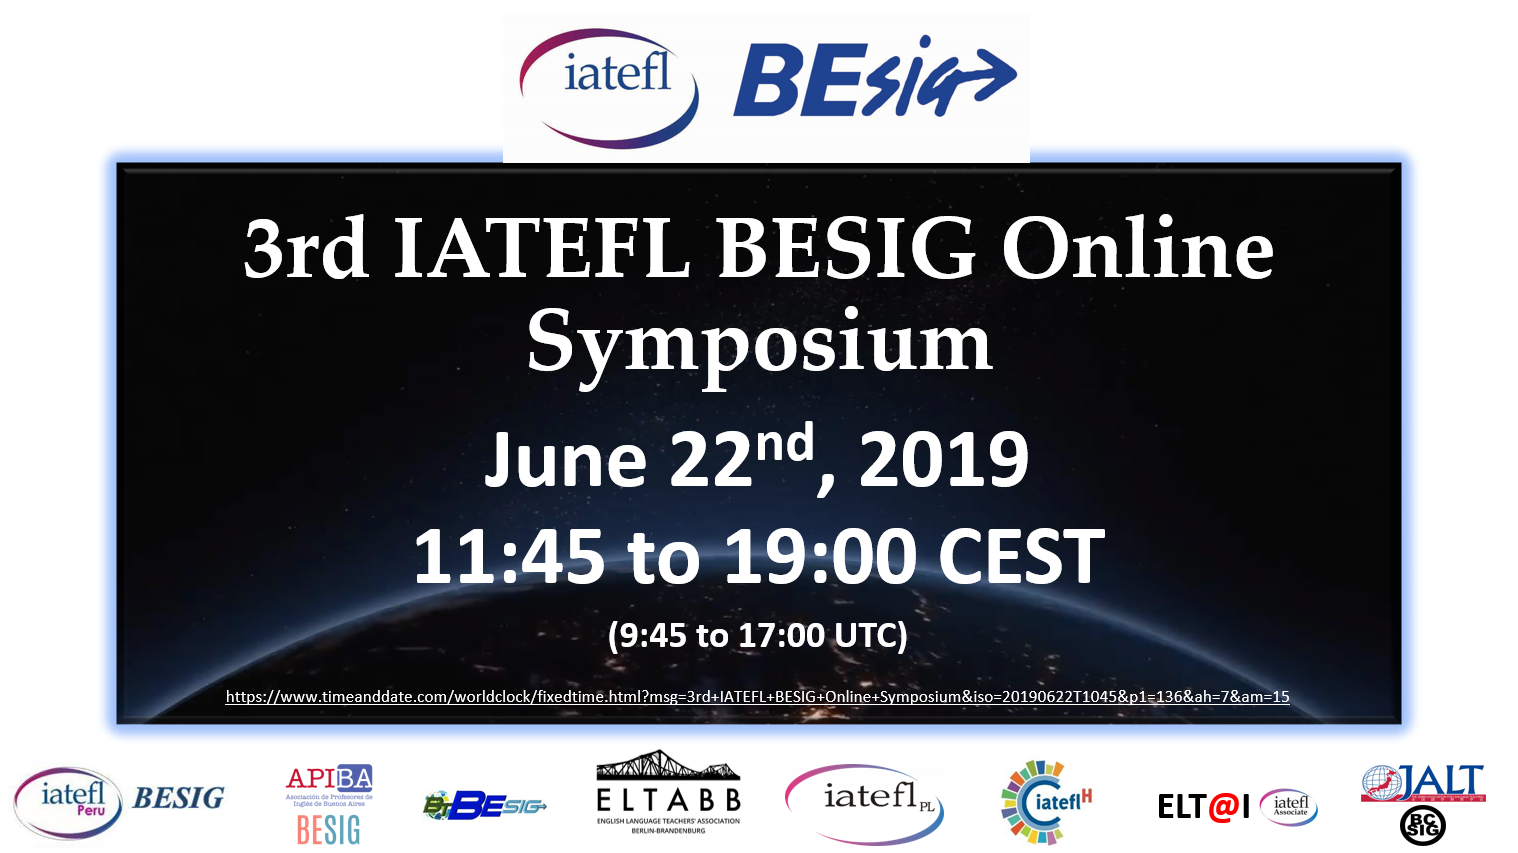 3rd IATEFL BESIG Online Symposium Event Post